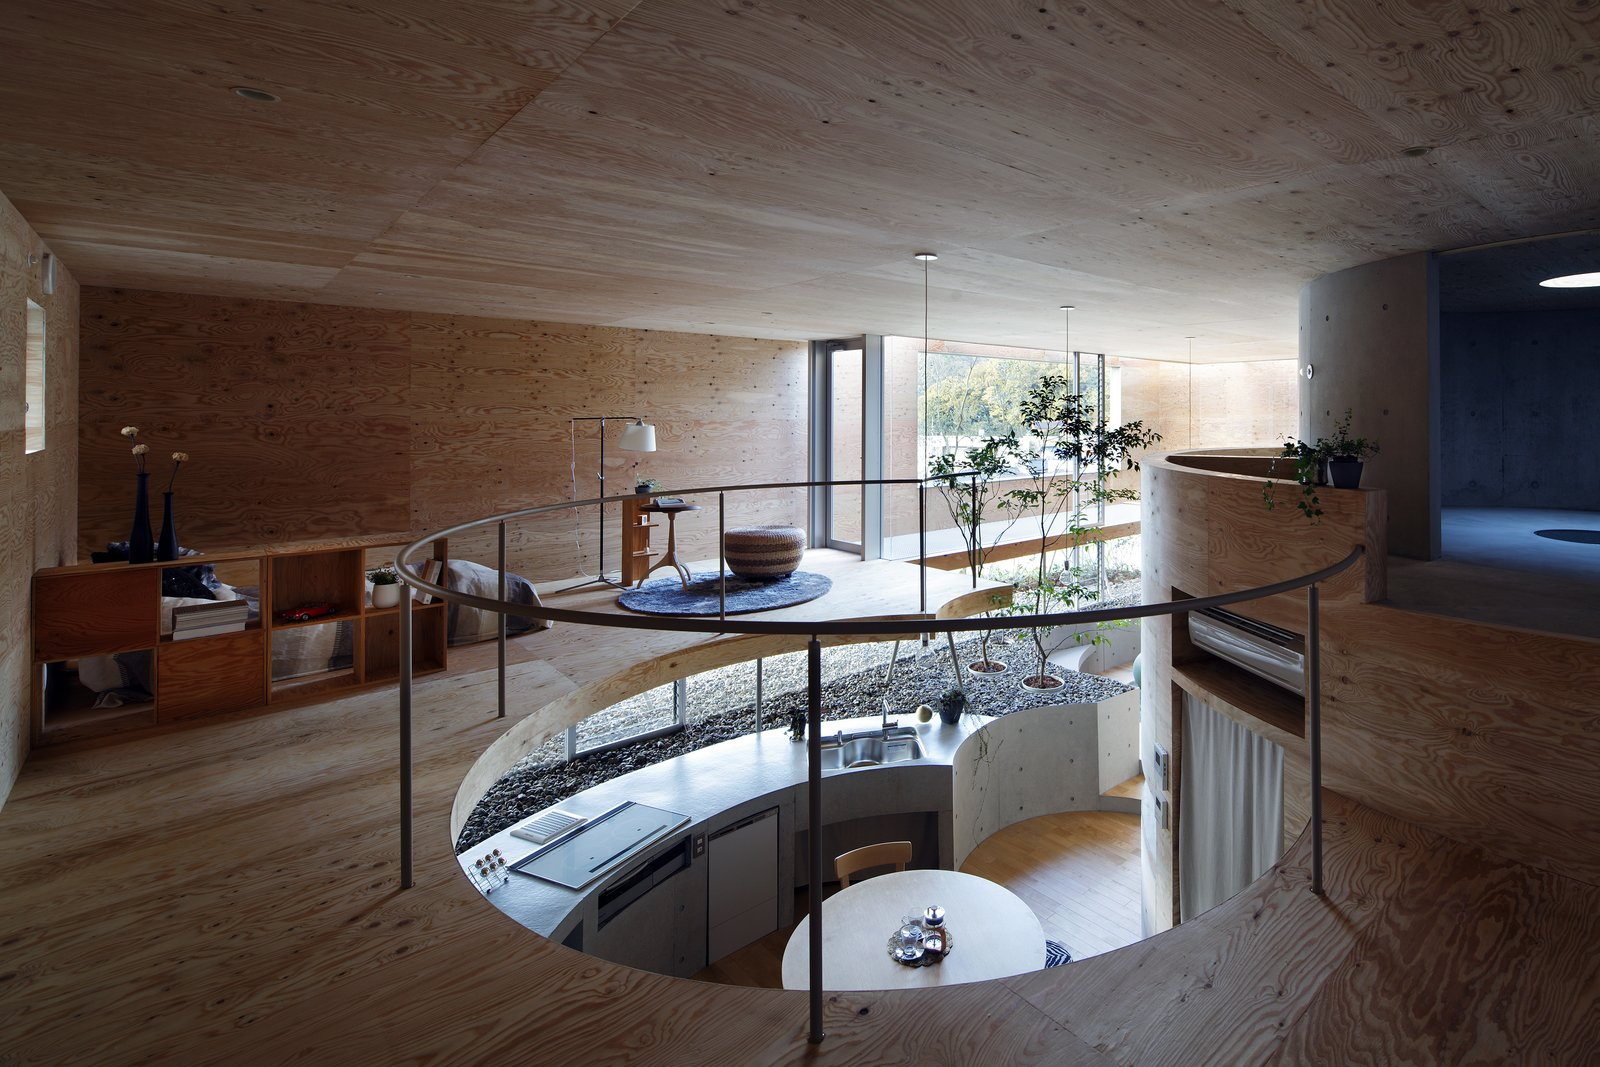 Living Room, Pendant Lighting, Recessed Lighting, Light Hardwood Floor, Lamps, End Tables, Rug Floor, Shelves, and Stools The circular kitchen and dining area feels like part of the garden.  Photo 9 of 12 in This Japanese Home Has a Sunken Interior That Blends Into the Earth